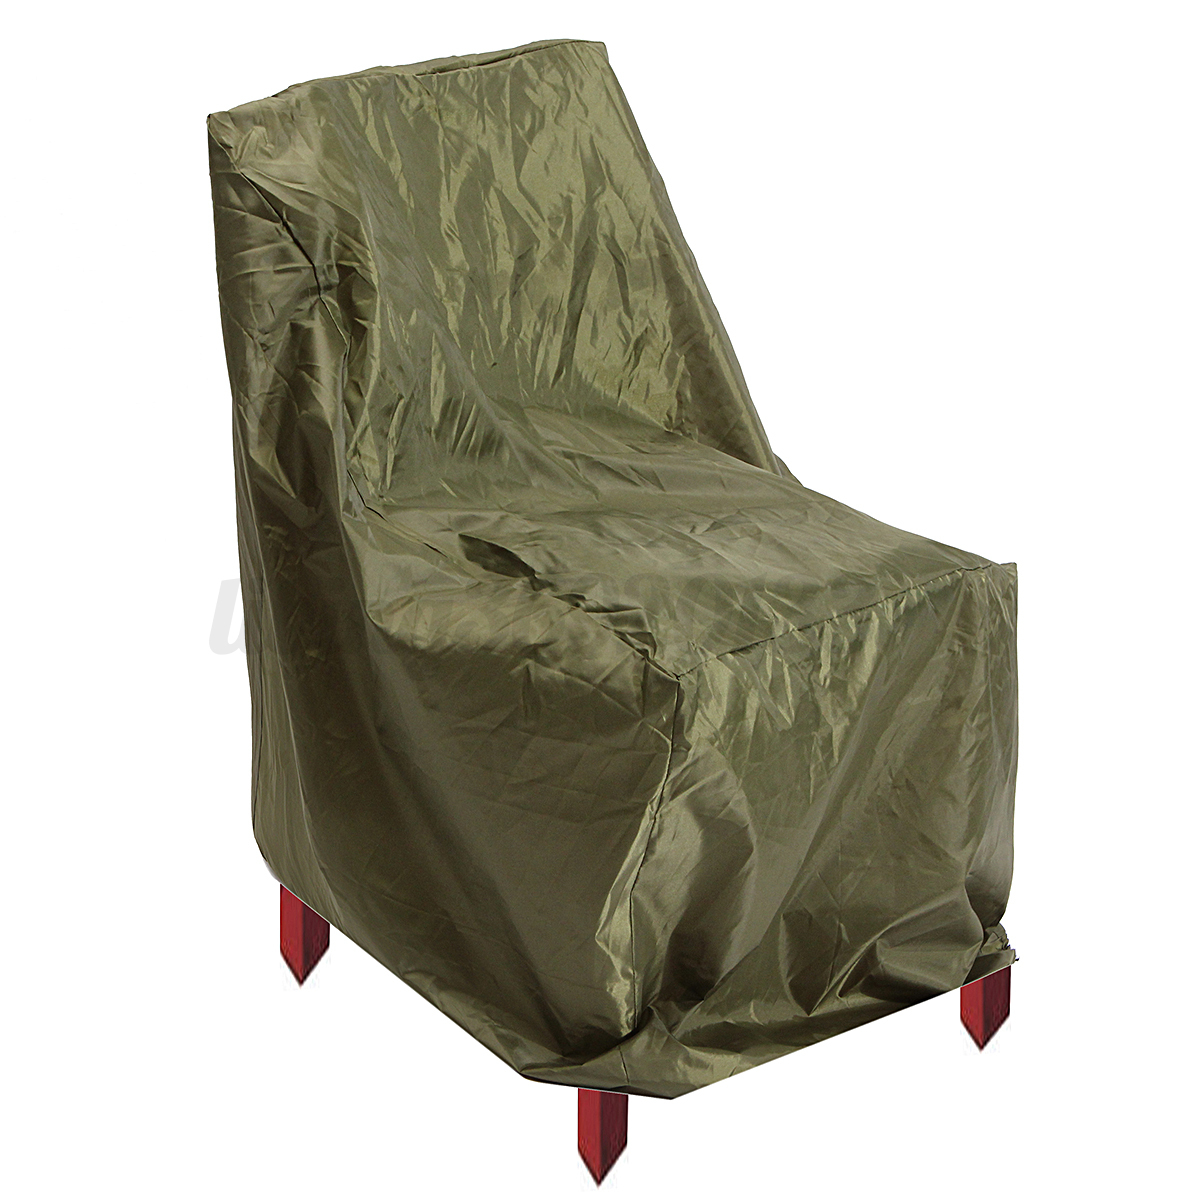 New Waterproof High Back Chair Cover Outdoor Patio Garden Furniture Protection Ebay